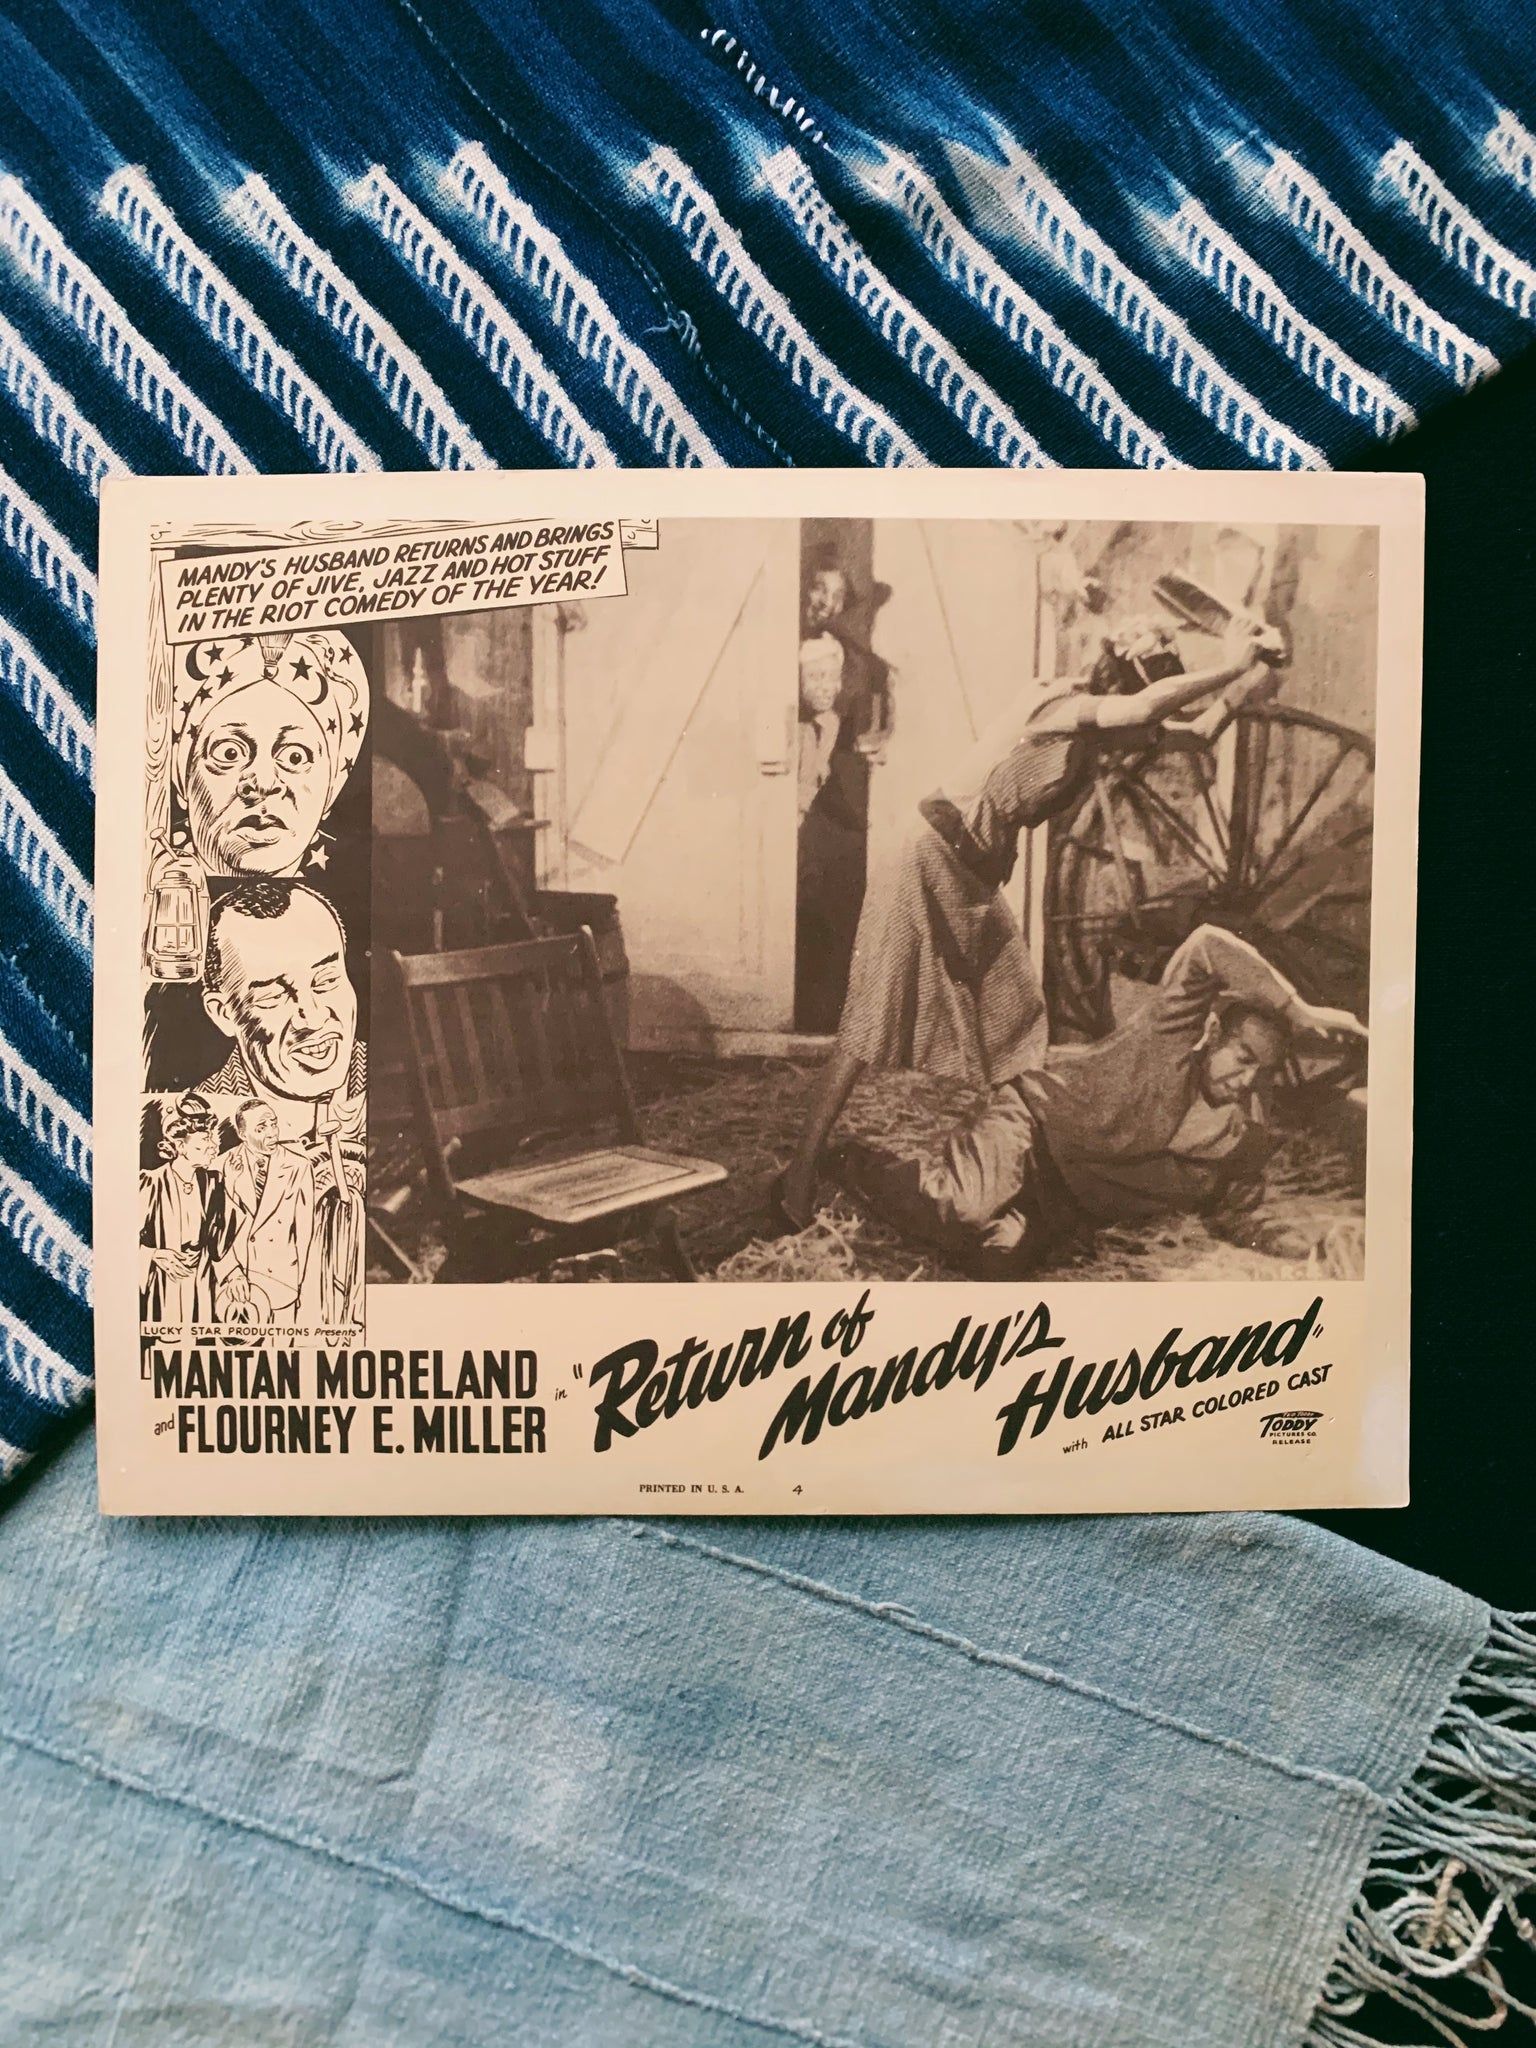 Vintage Cinema Lobby Card // Return of Mandy's Husband (Please Select)